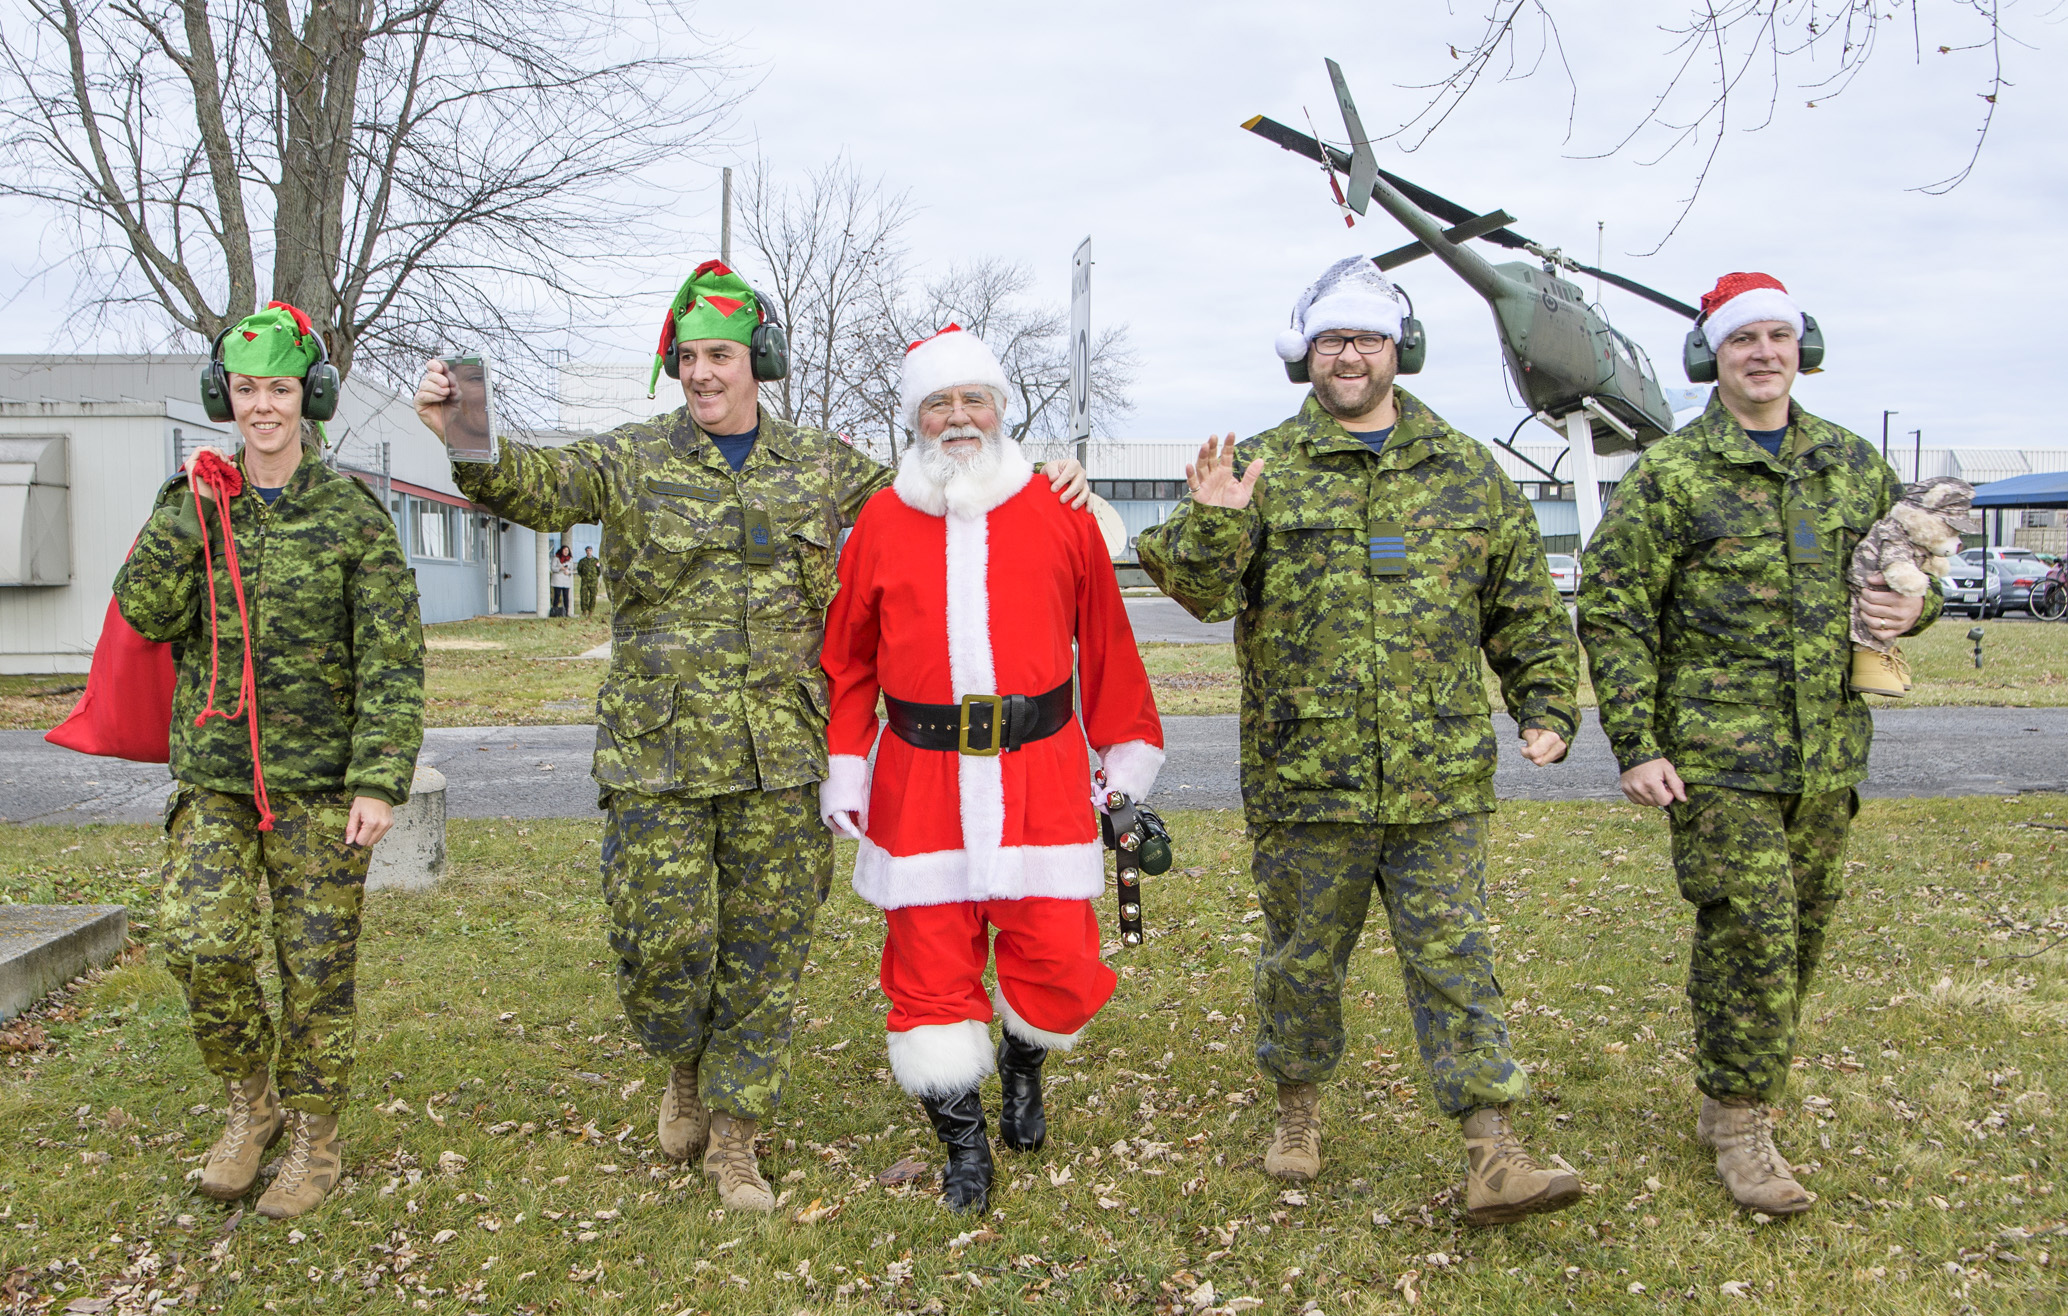 Four people, wearing disruptive pattern combat uniforms and Santa or elf-style hats, walk across a grassy area with a person dressed as Santa.